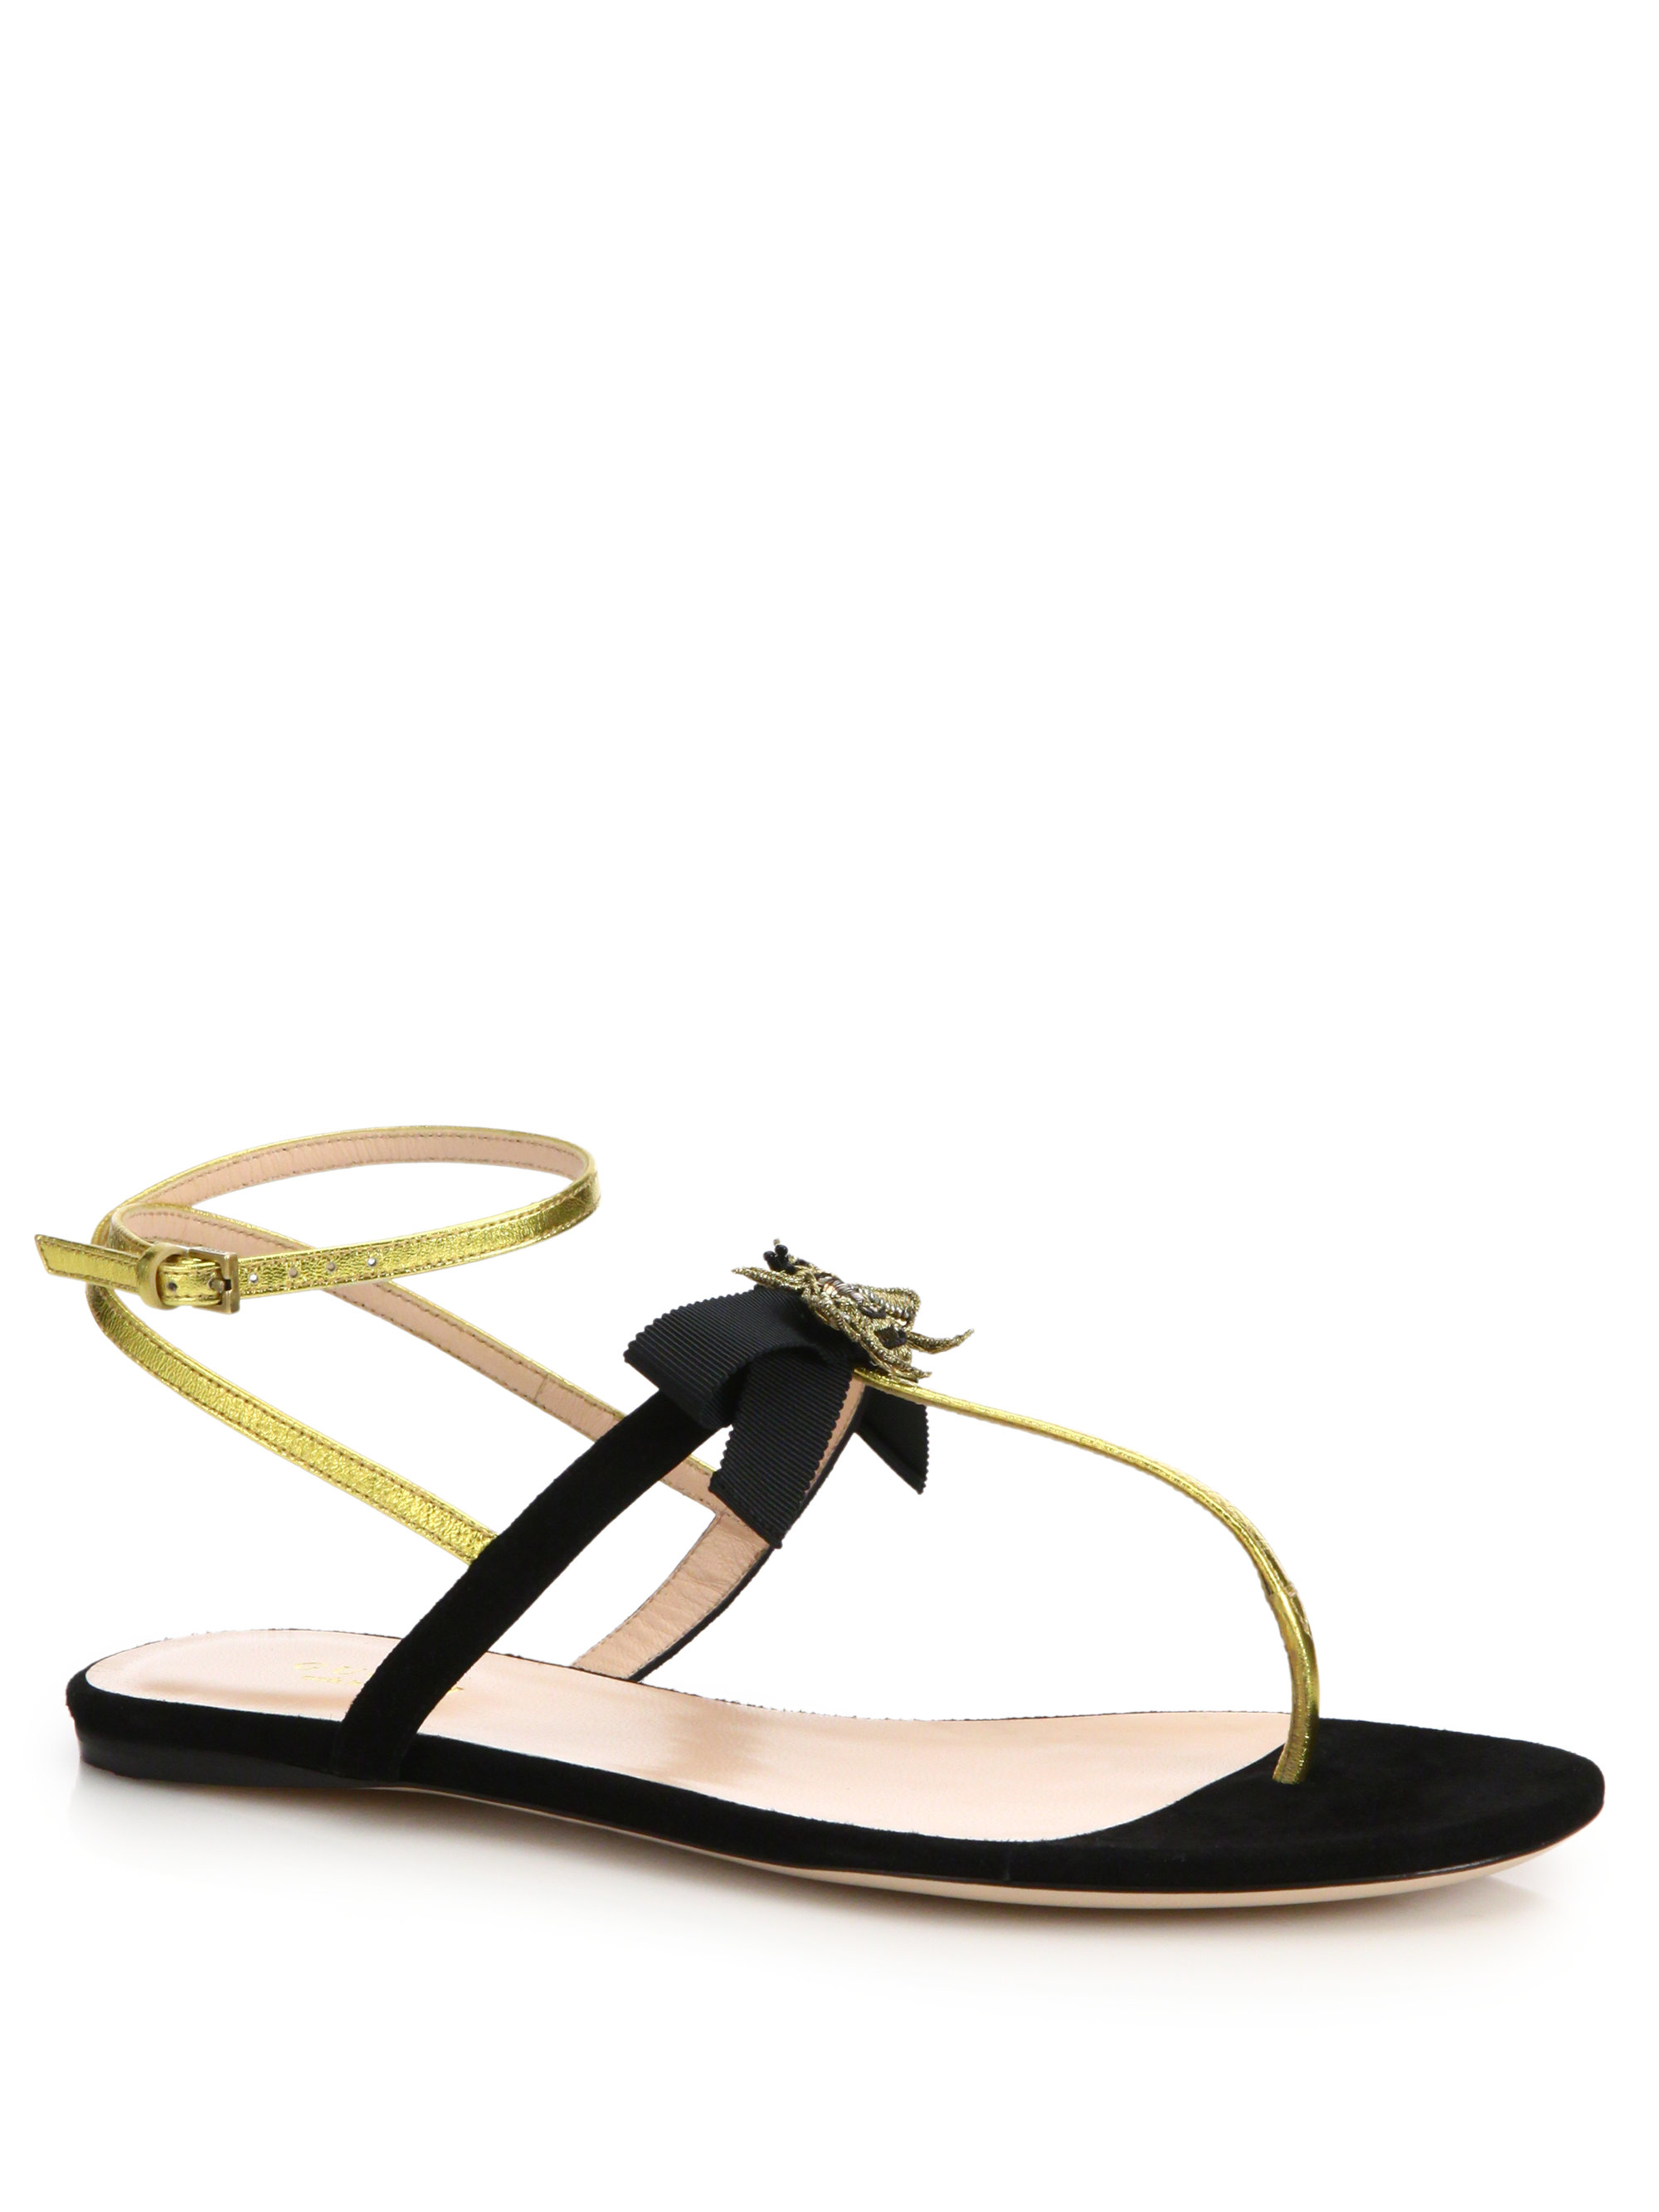 Lyst - Gucci Moody Suede and Leather Sandals in Black eb0e1a883